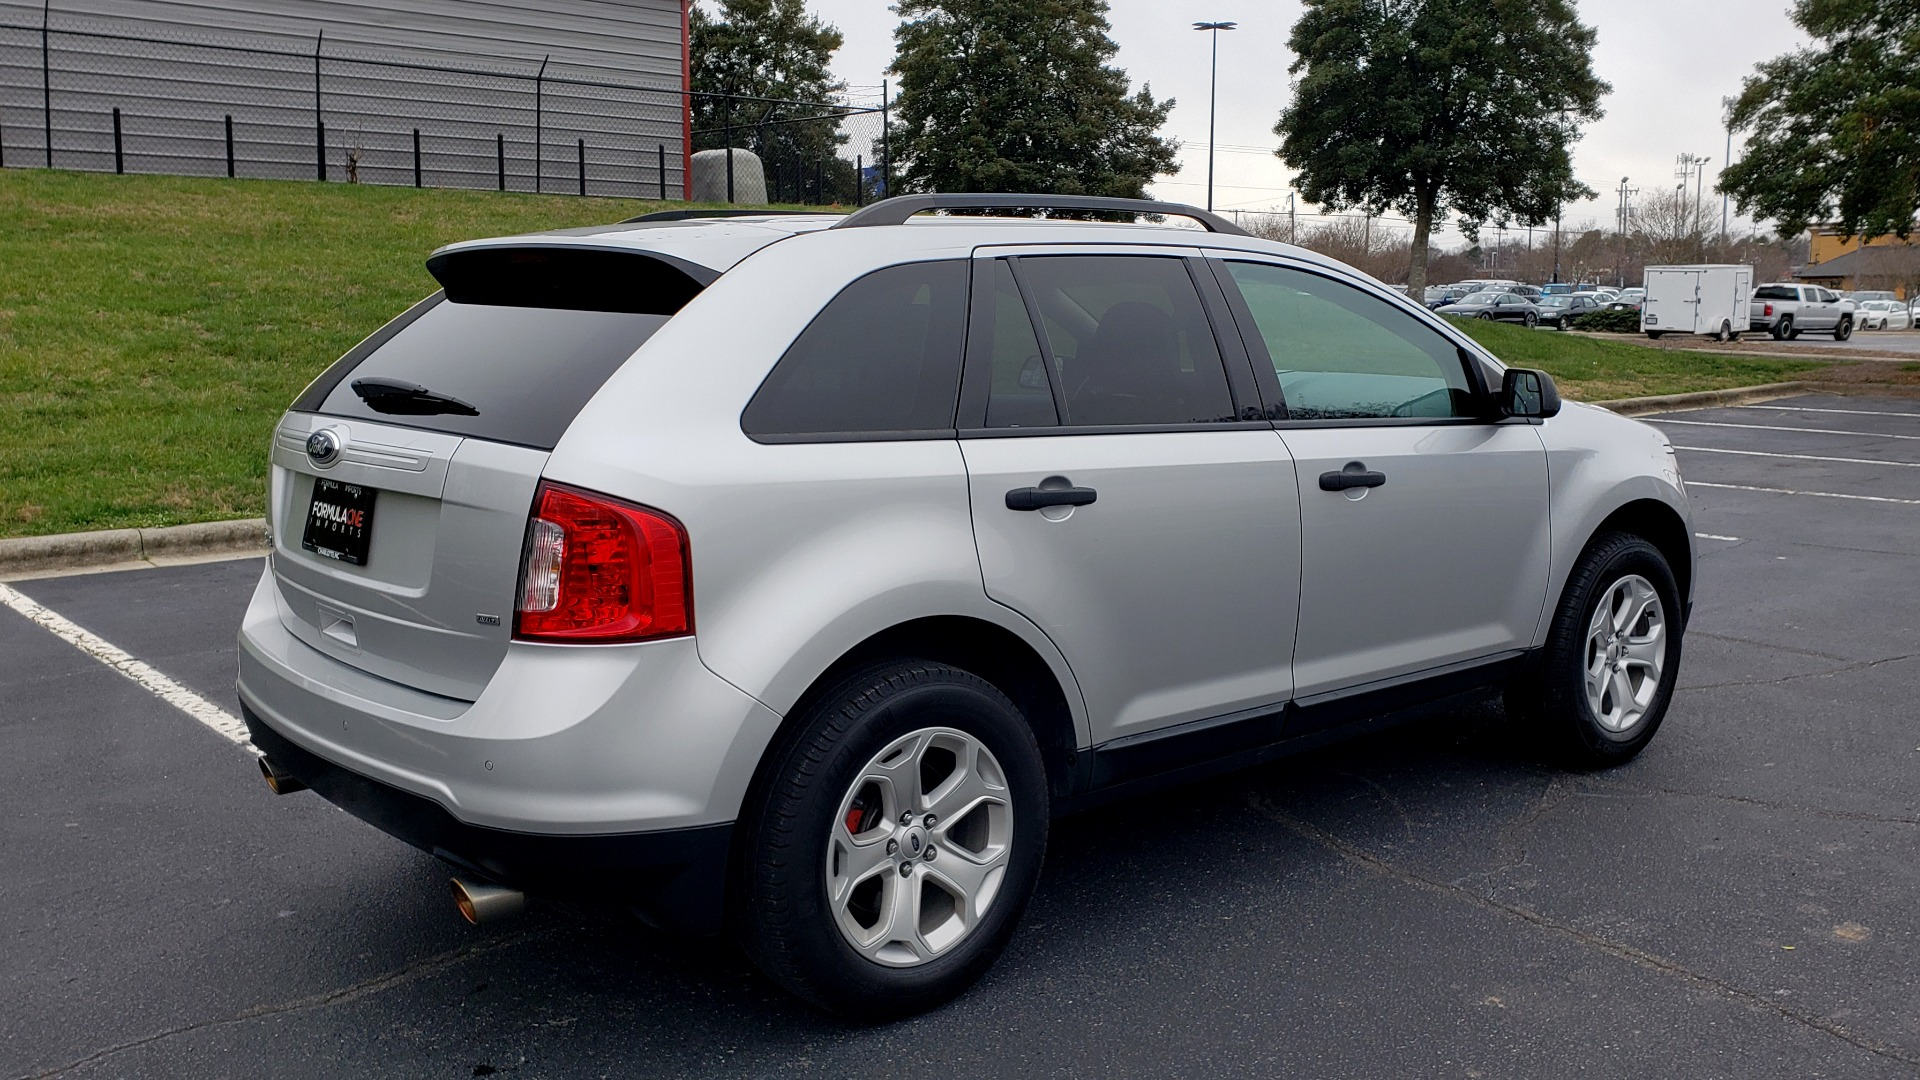 Used 2013 Ford EDGE SE / AWD / 18 IN WHEELS / SYNC / 3.5L V6 / AUTO for sale Sold at Formula Imports in Charlotte NC 28227 6